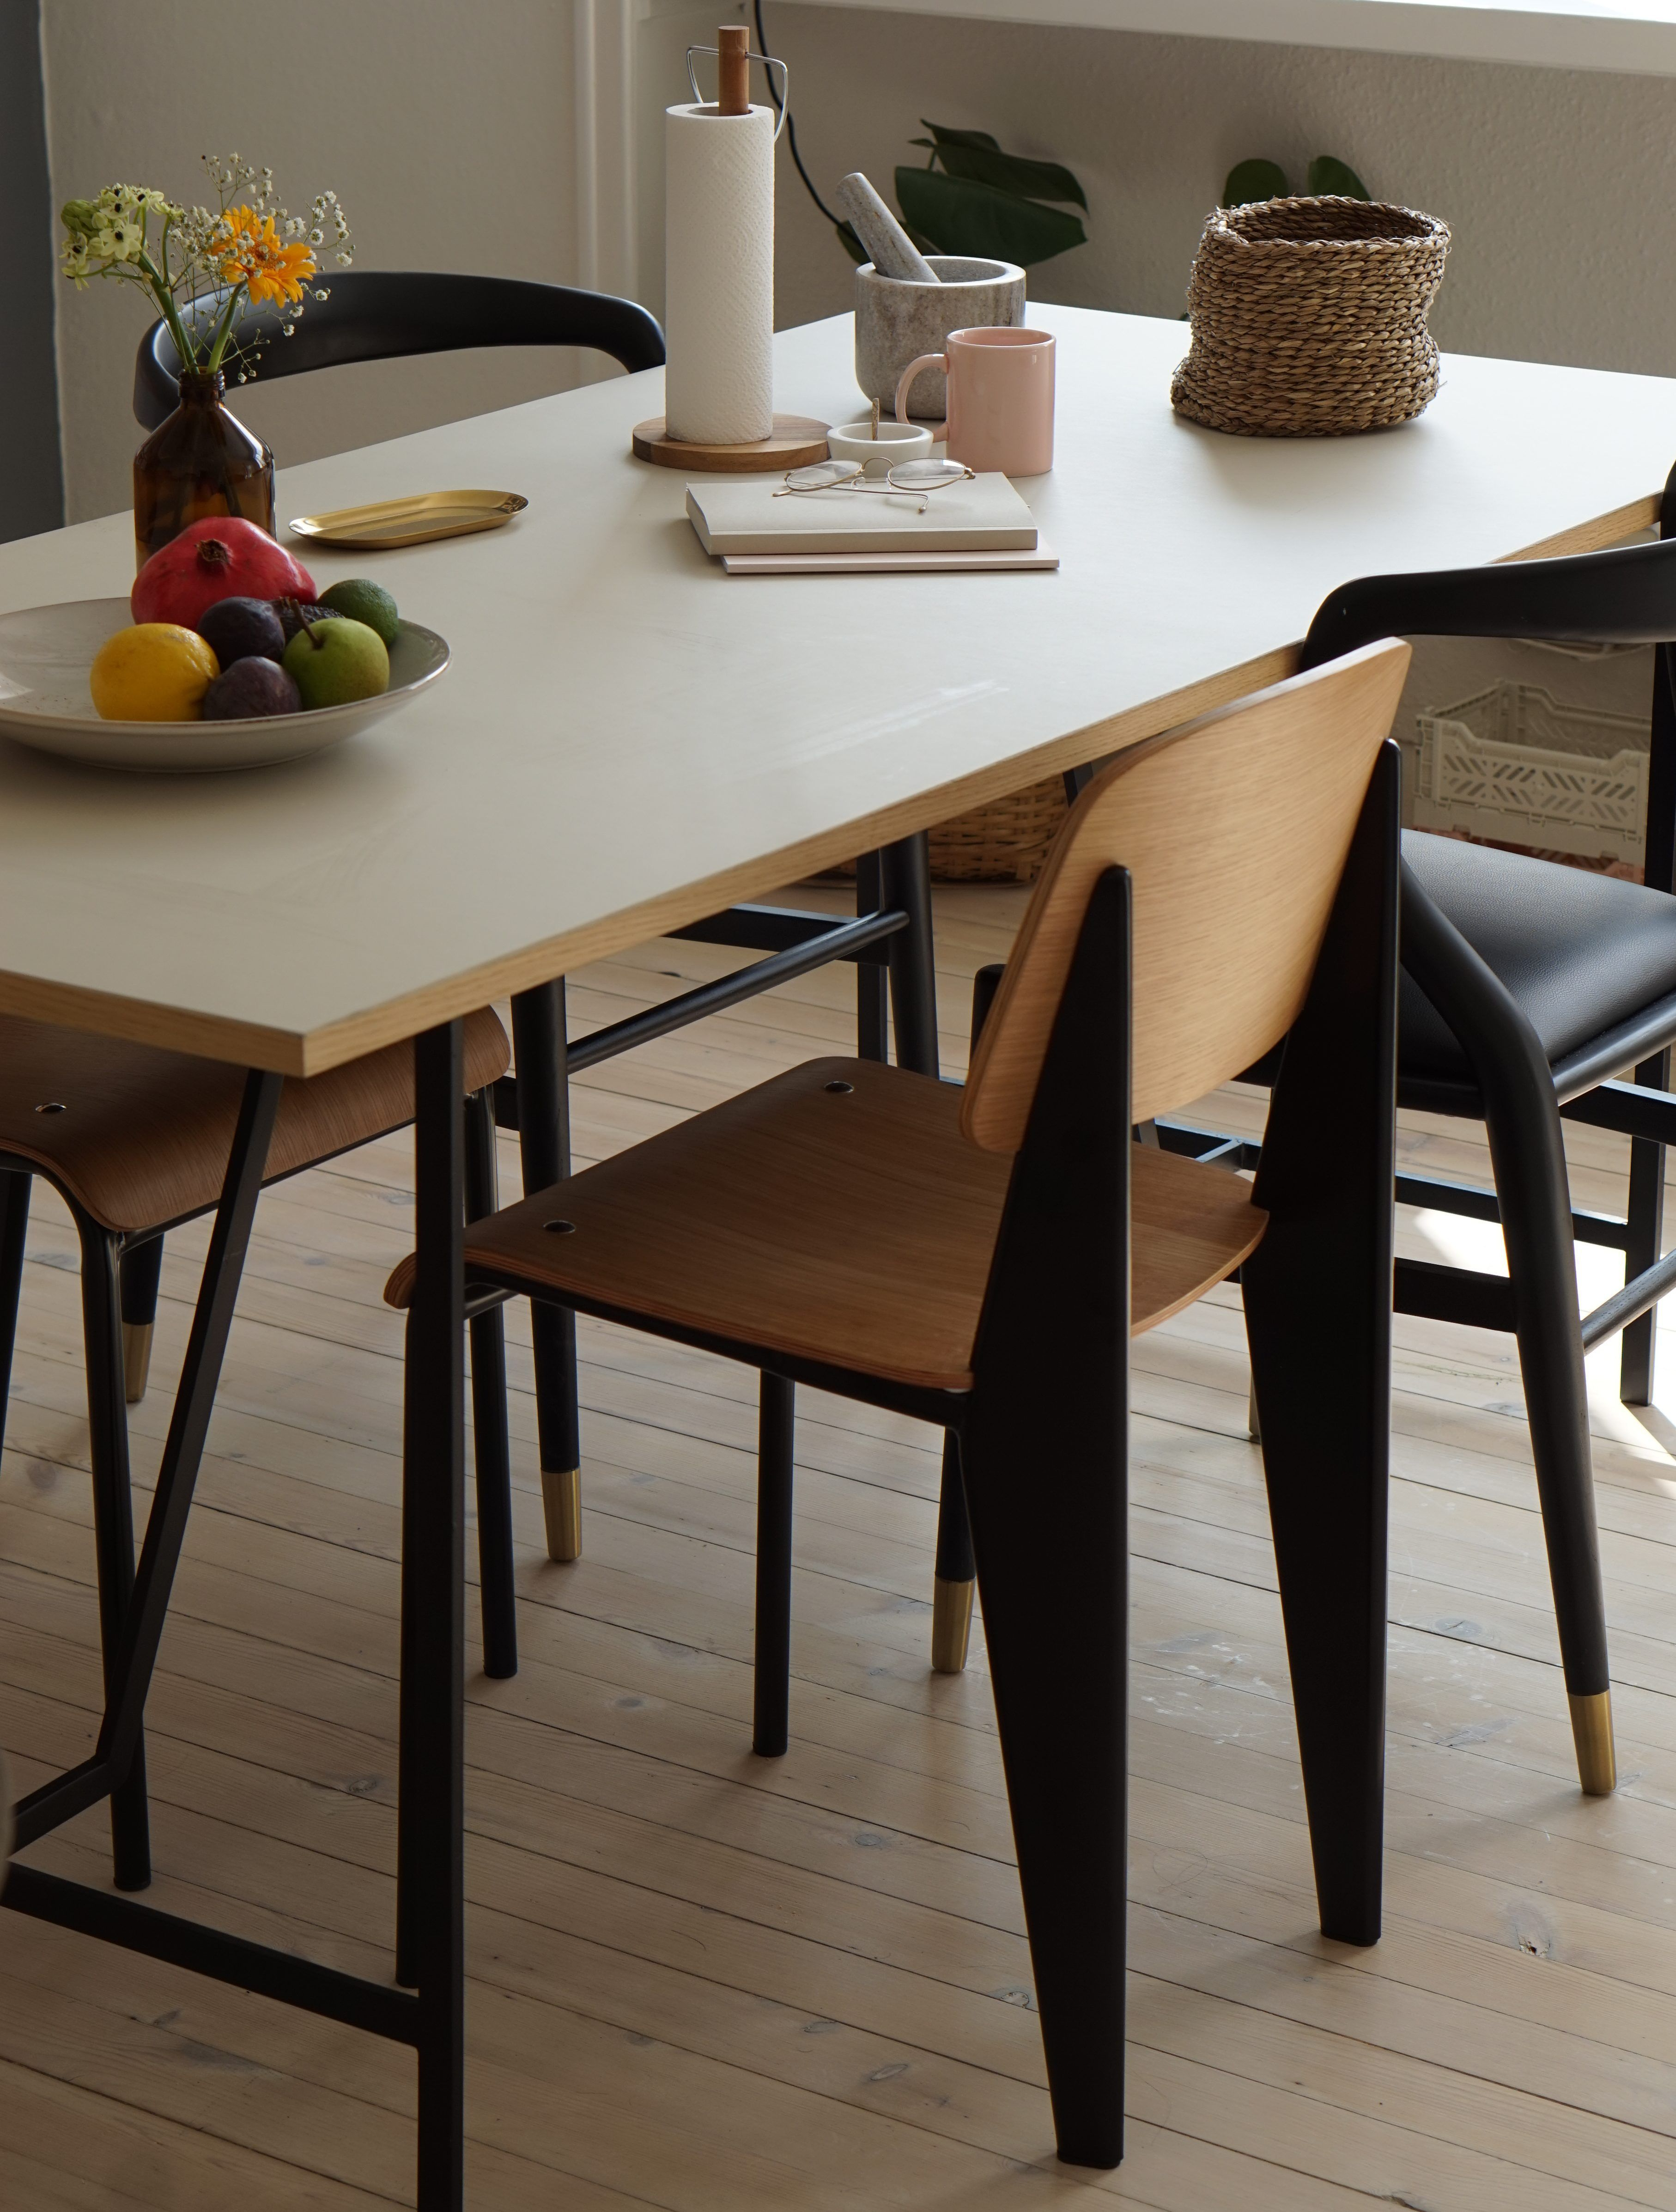 Top 10 Contemporary Chairs To Impress Faux Leather Dining Chairs